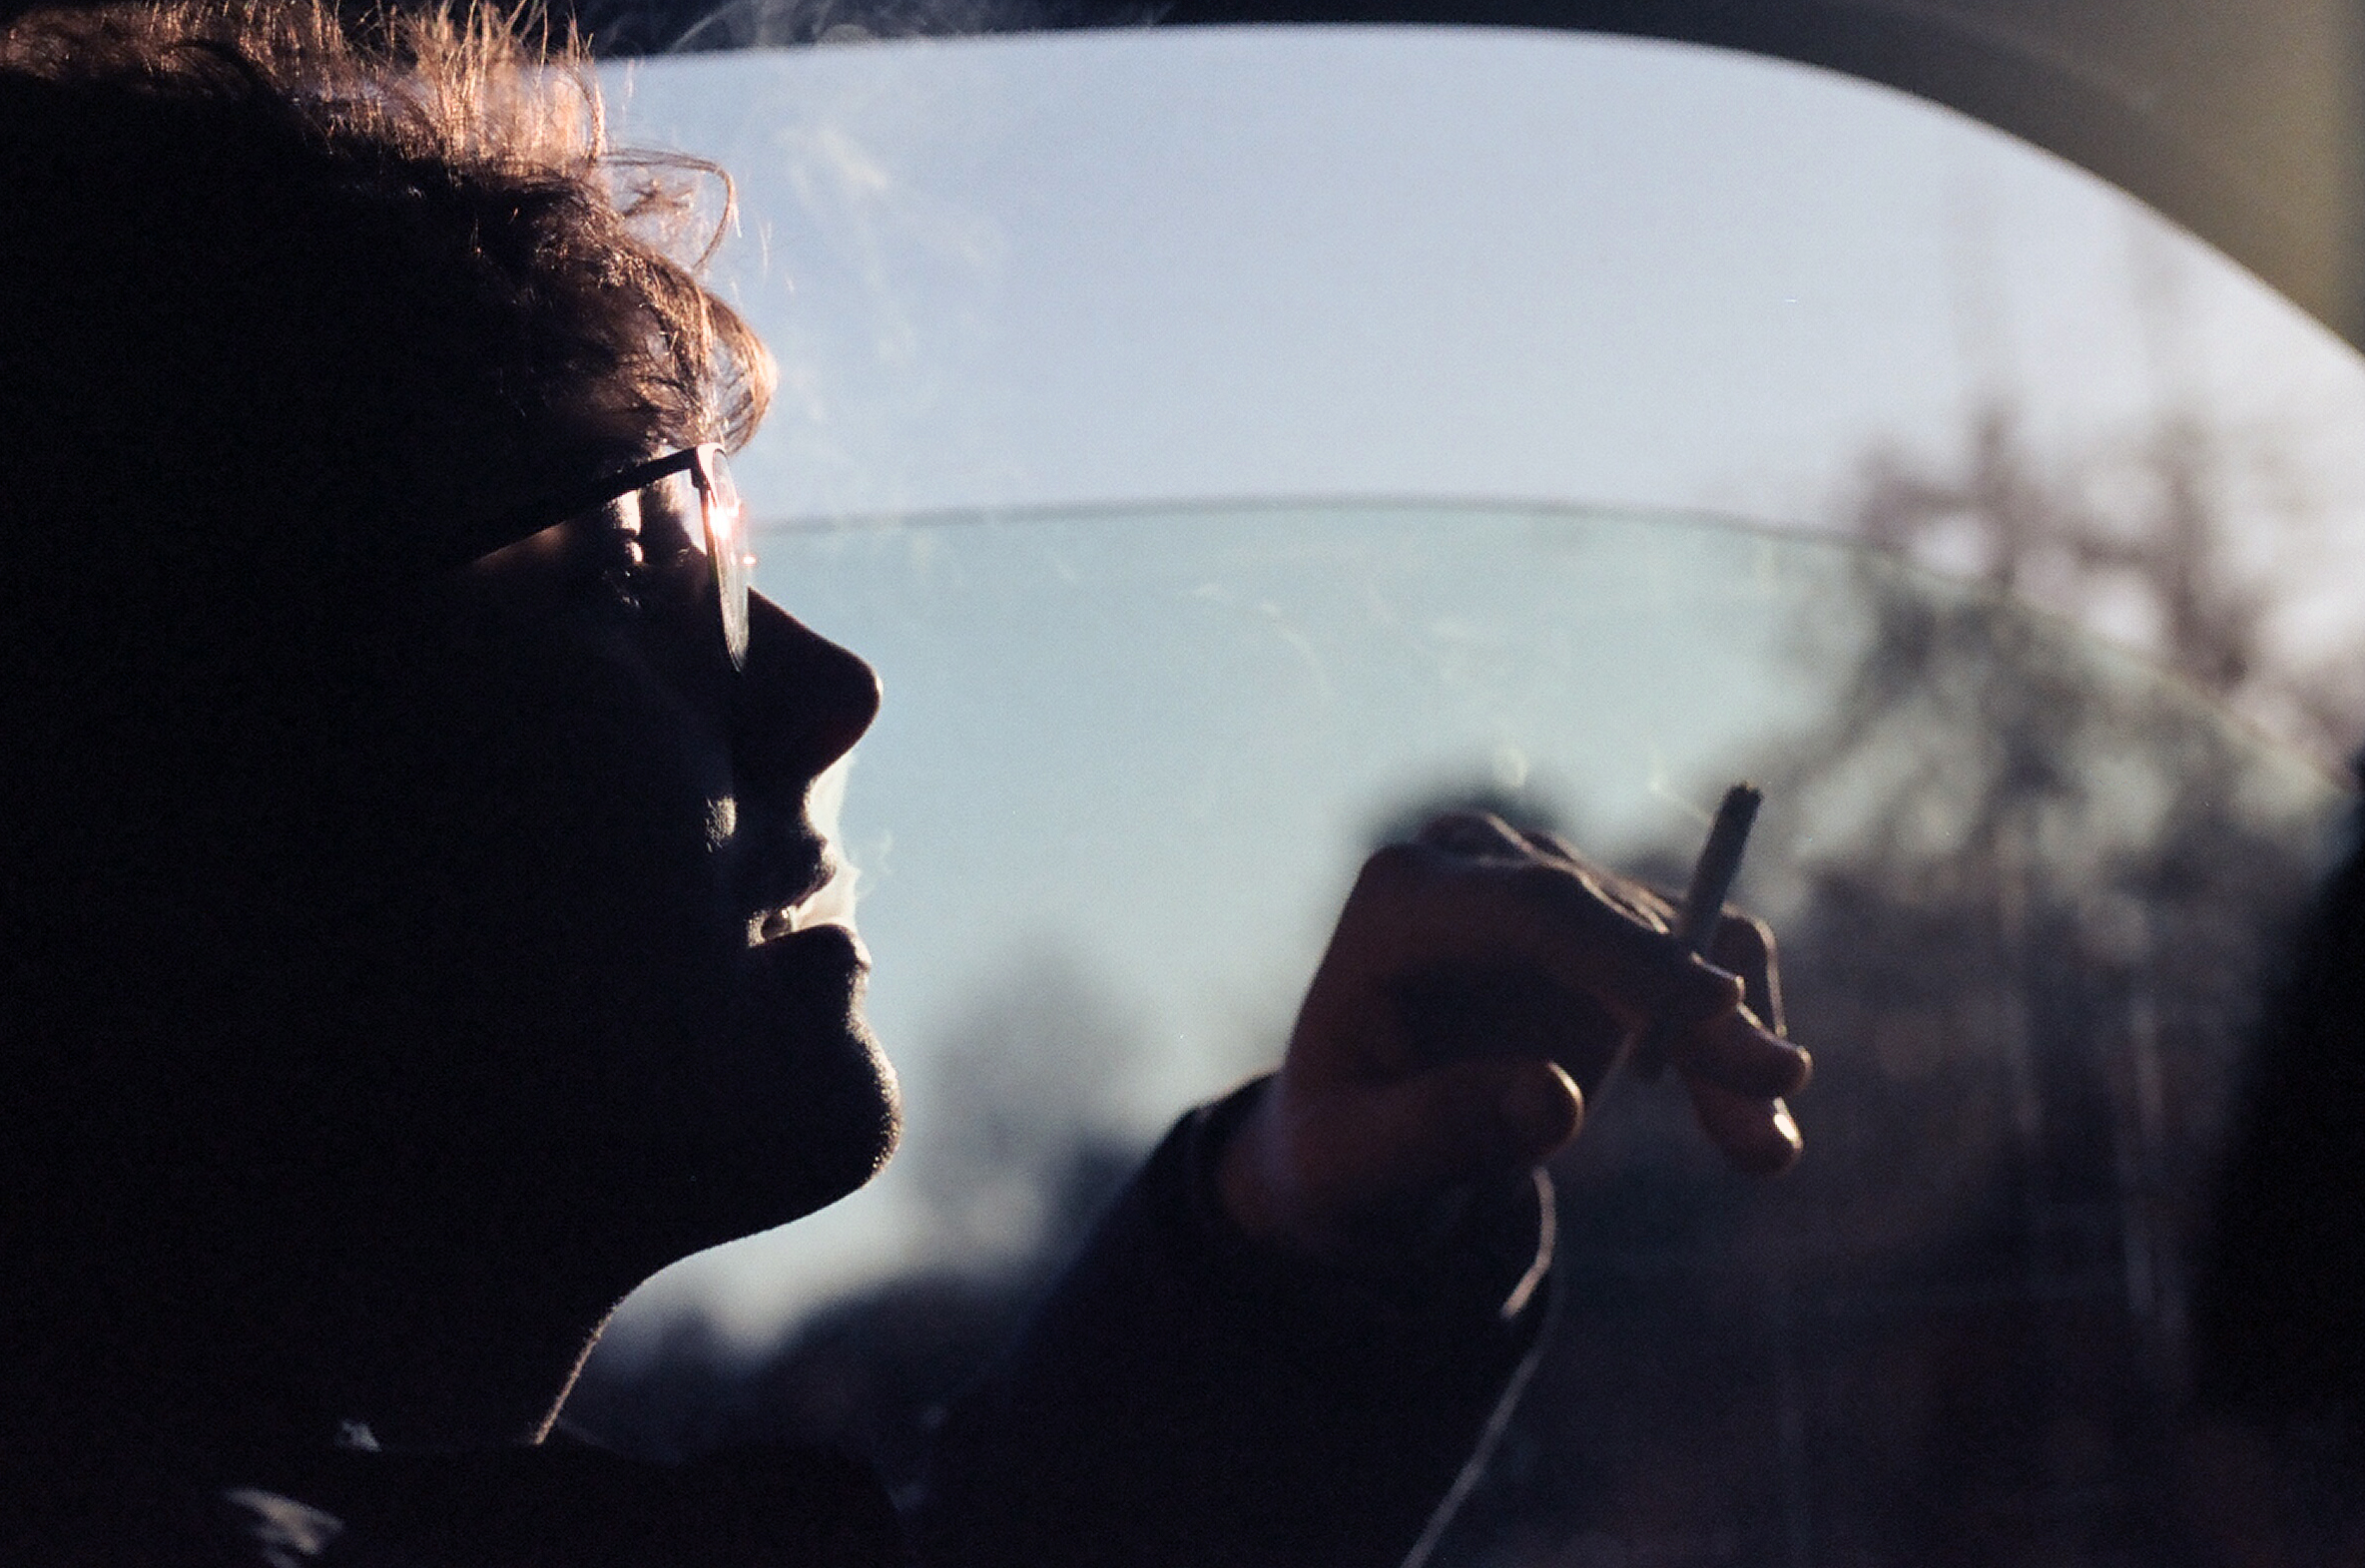 film photograph of man smoking cigarette